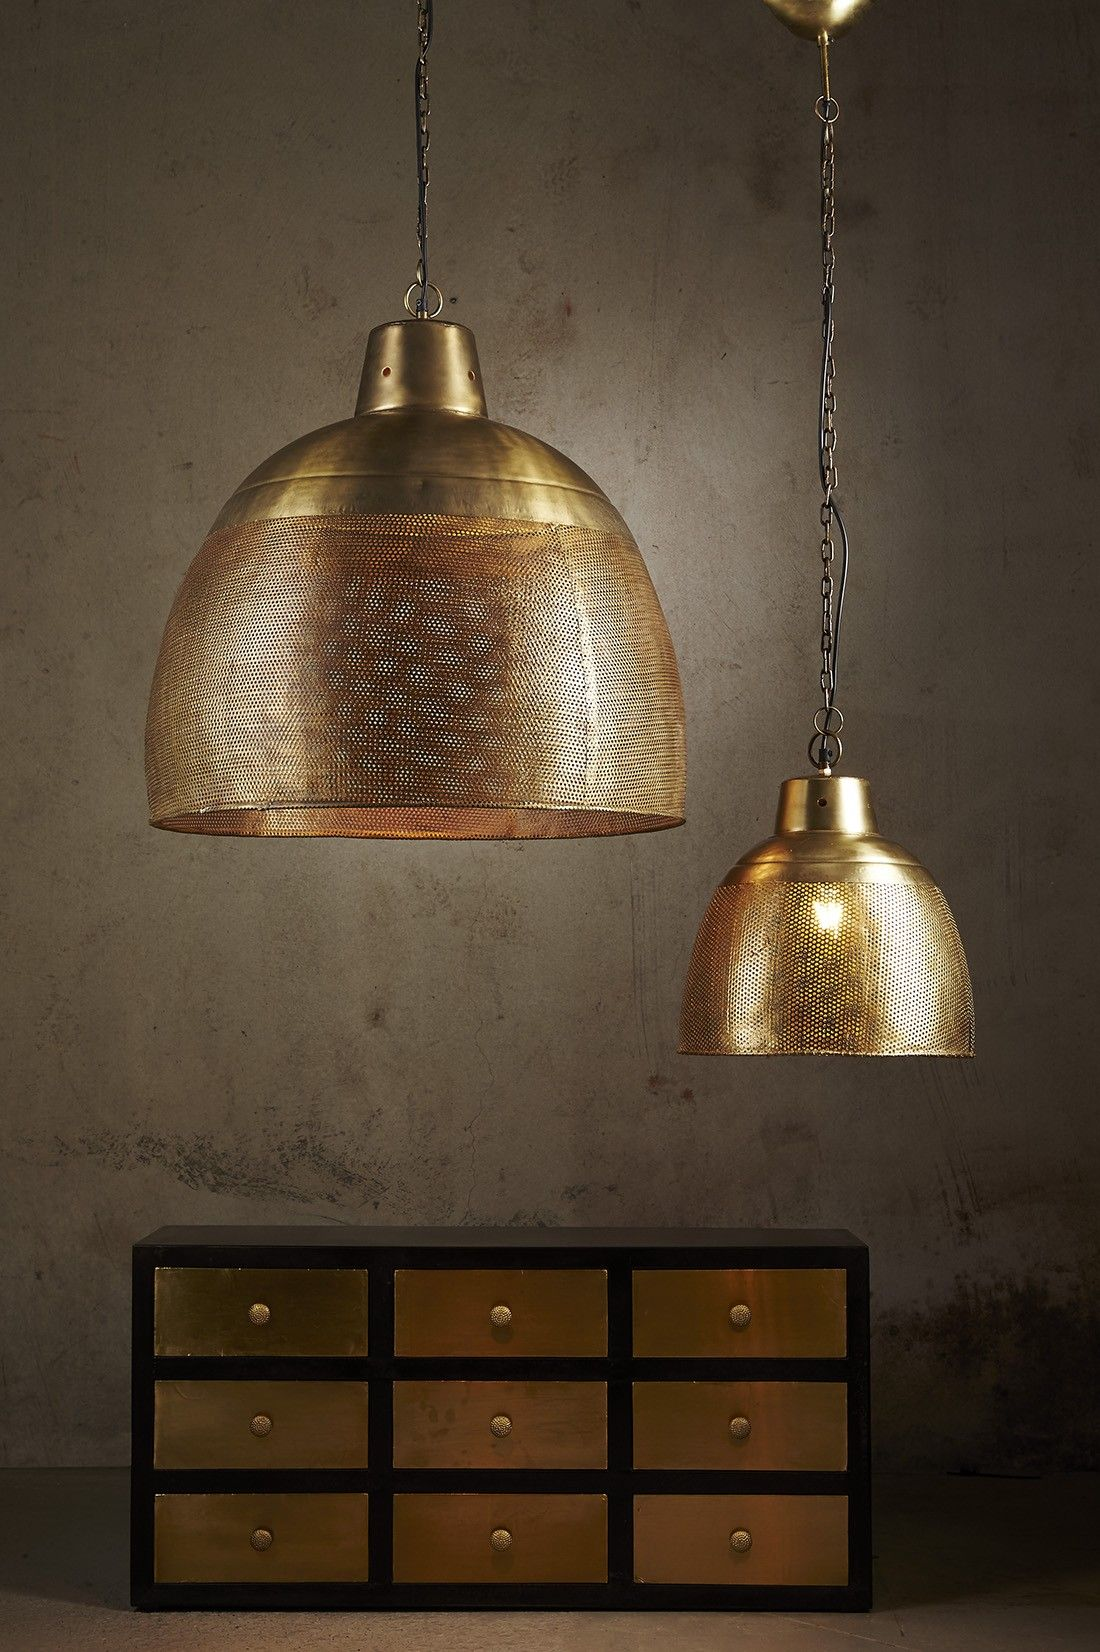 A Brass Perforated Pendant Light With An Antique Gold Appearance